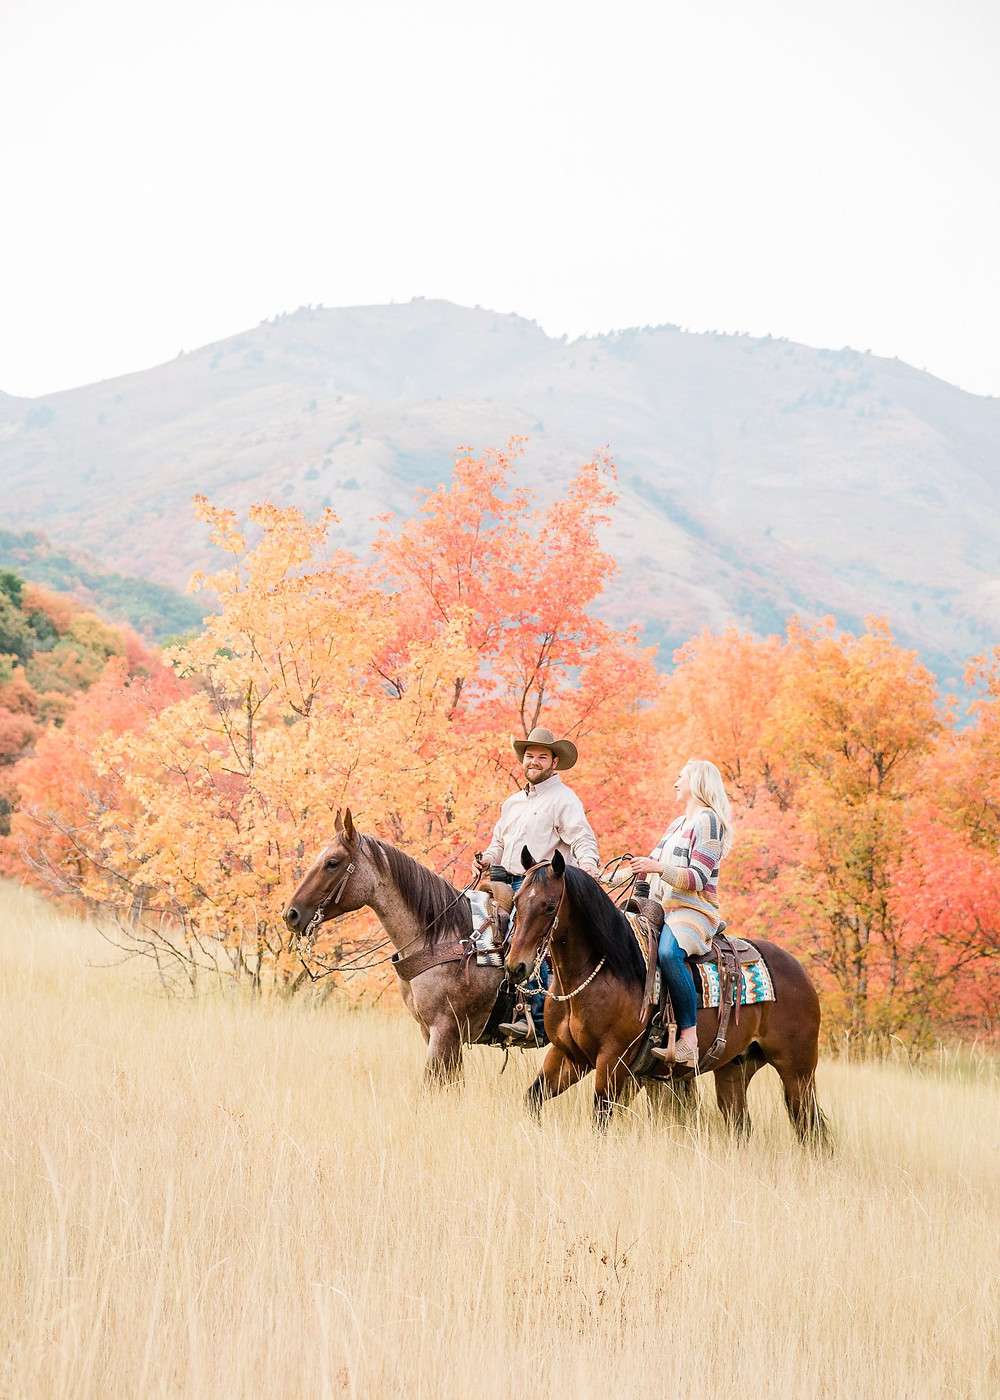 Lauren and Dj riding their horses through the valley with the beautiful fall colors